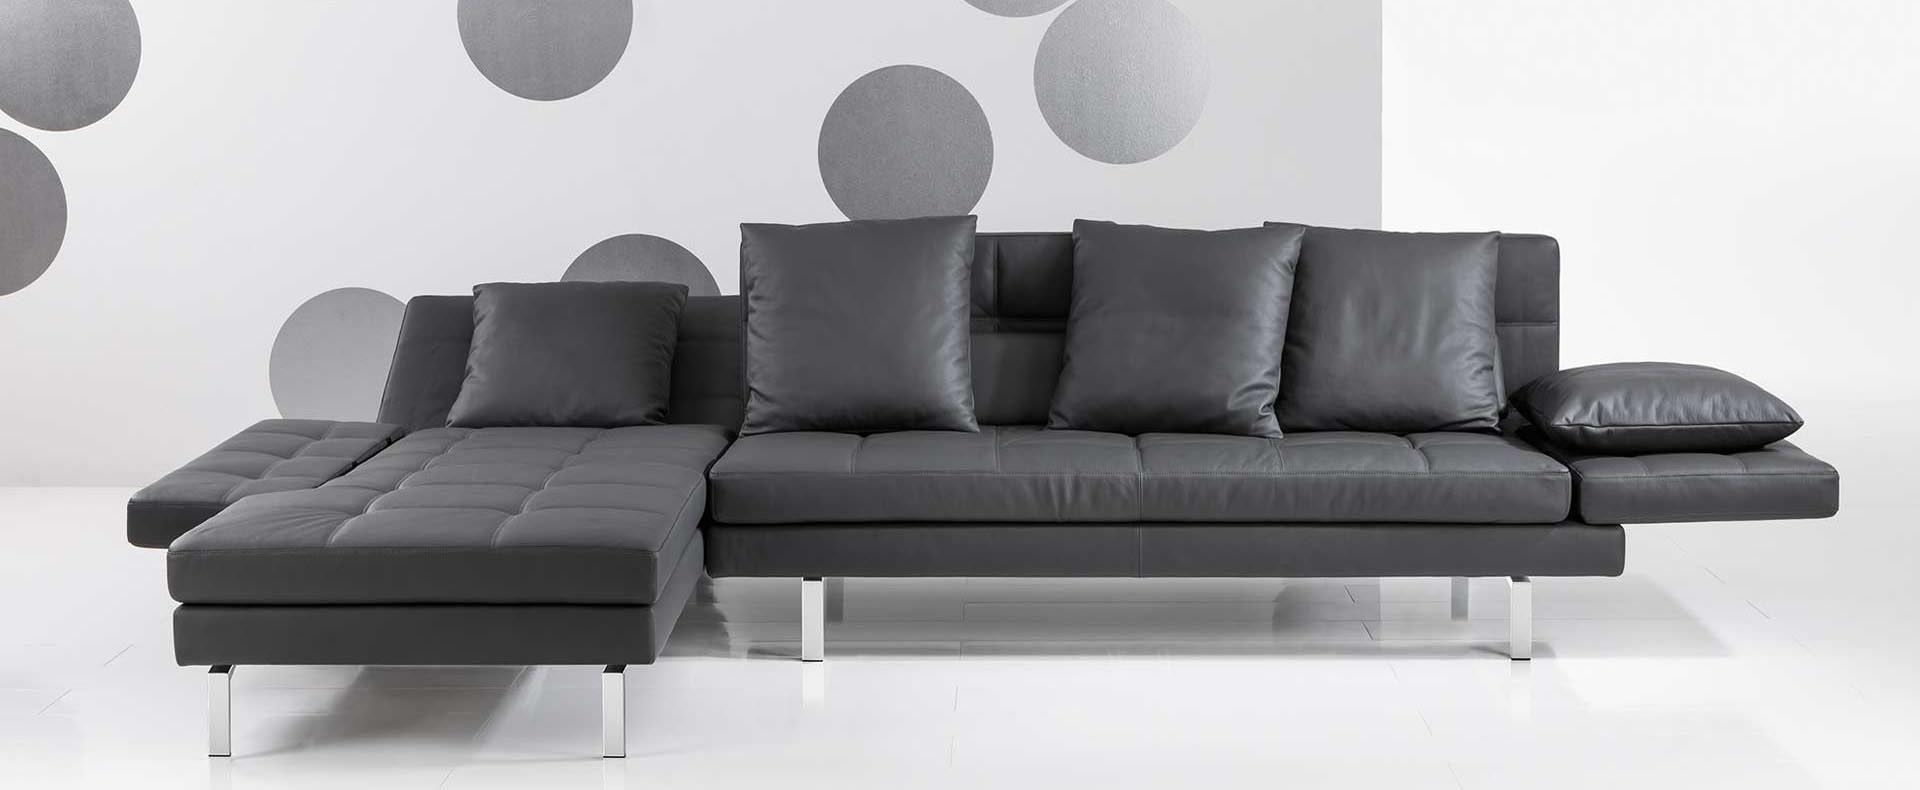 Seats En Sofa Heerlen Seats And Sofas Hamburg Zuhause Image Idee